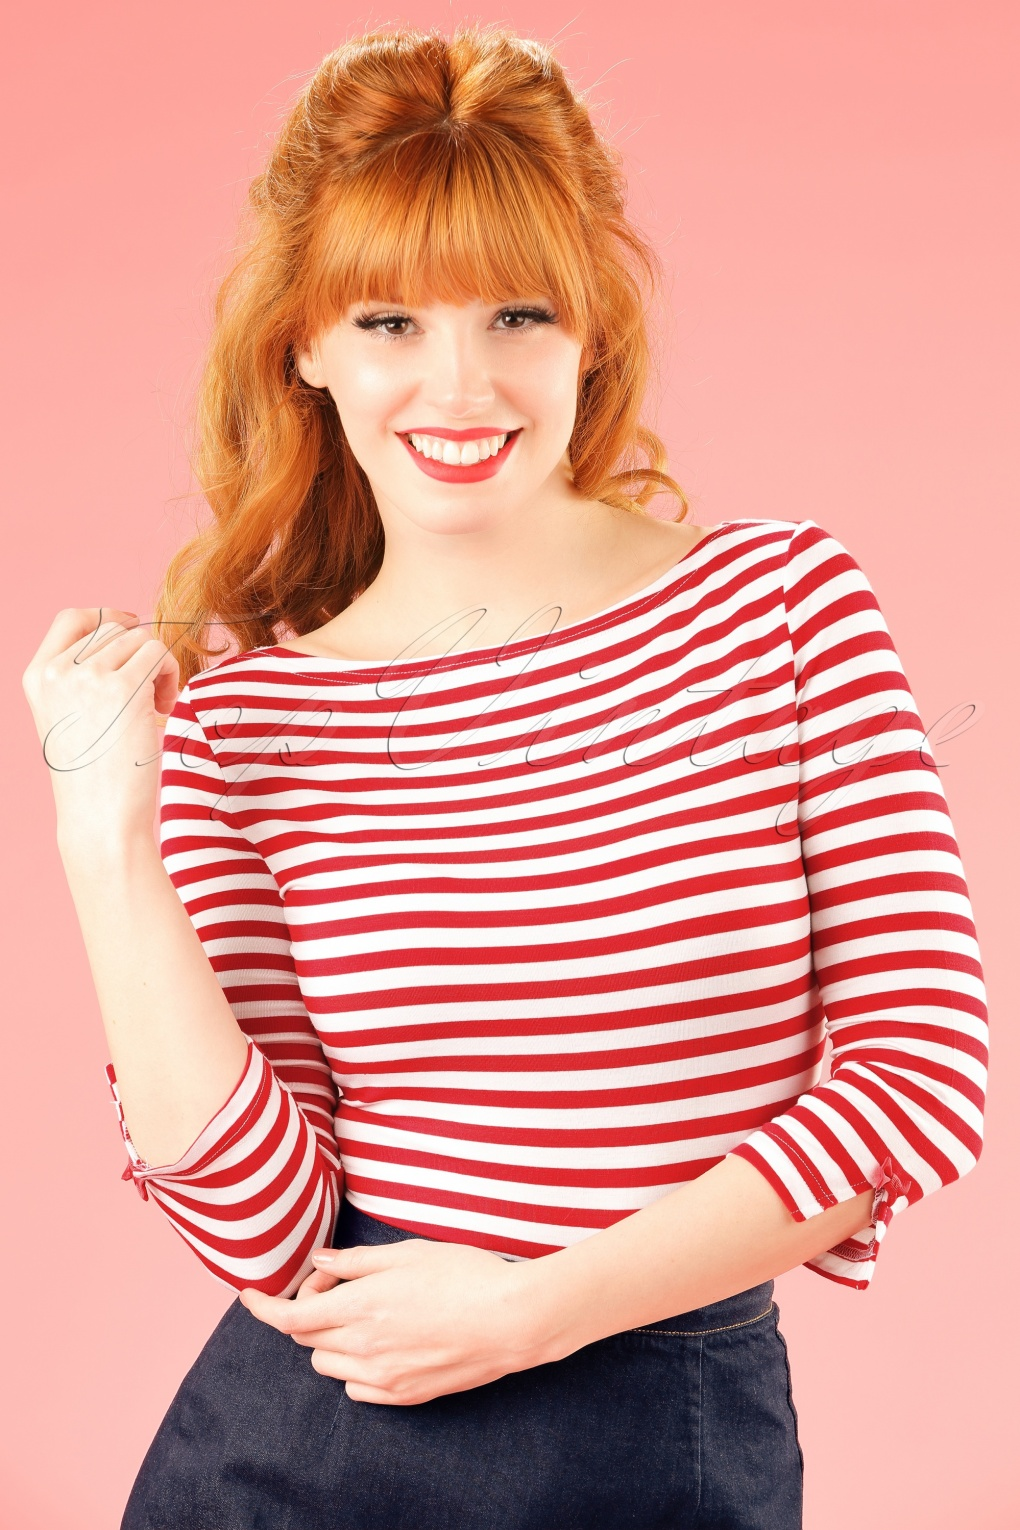 Sailor Dresses, Nautical Theme Dress, WW2 Dresses 50s Modern Love Stripes Top in White and Red  AT vintagedancer.com